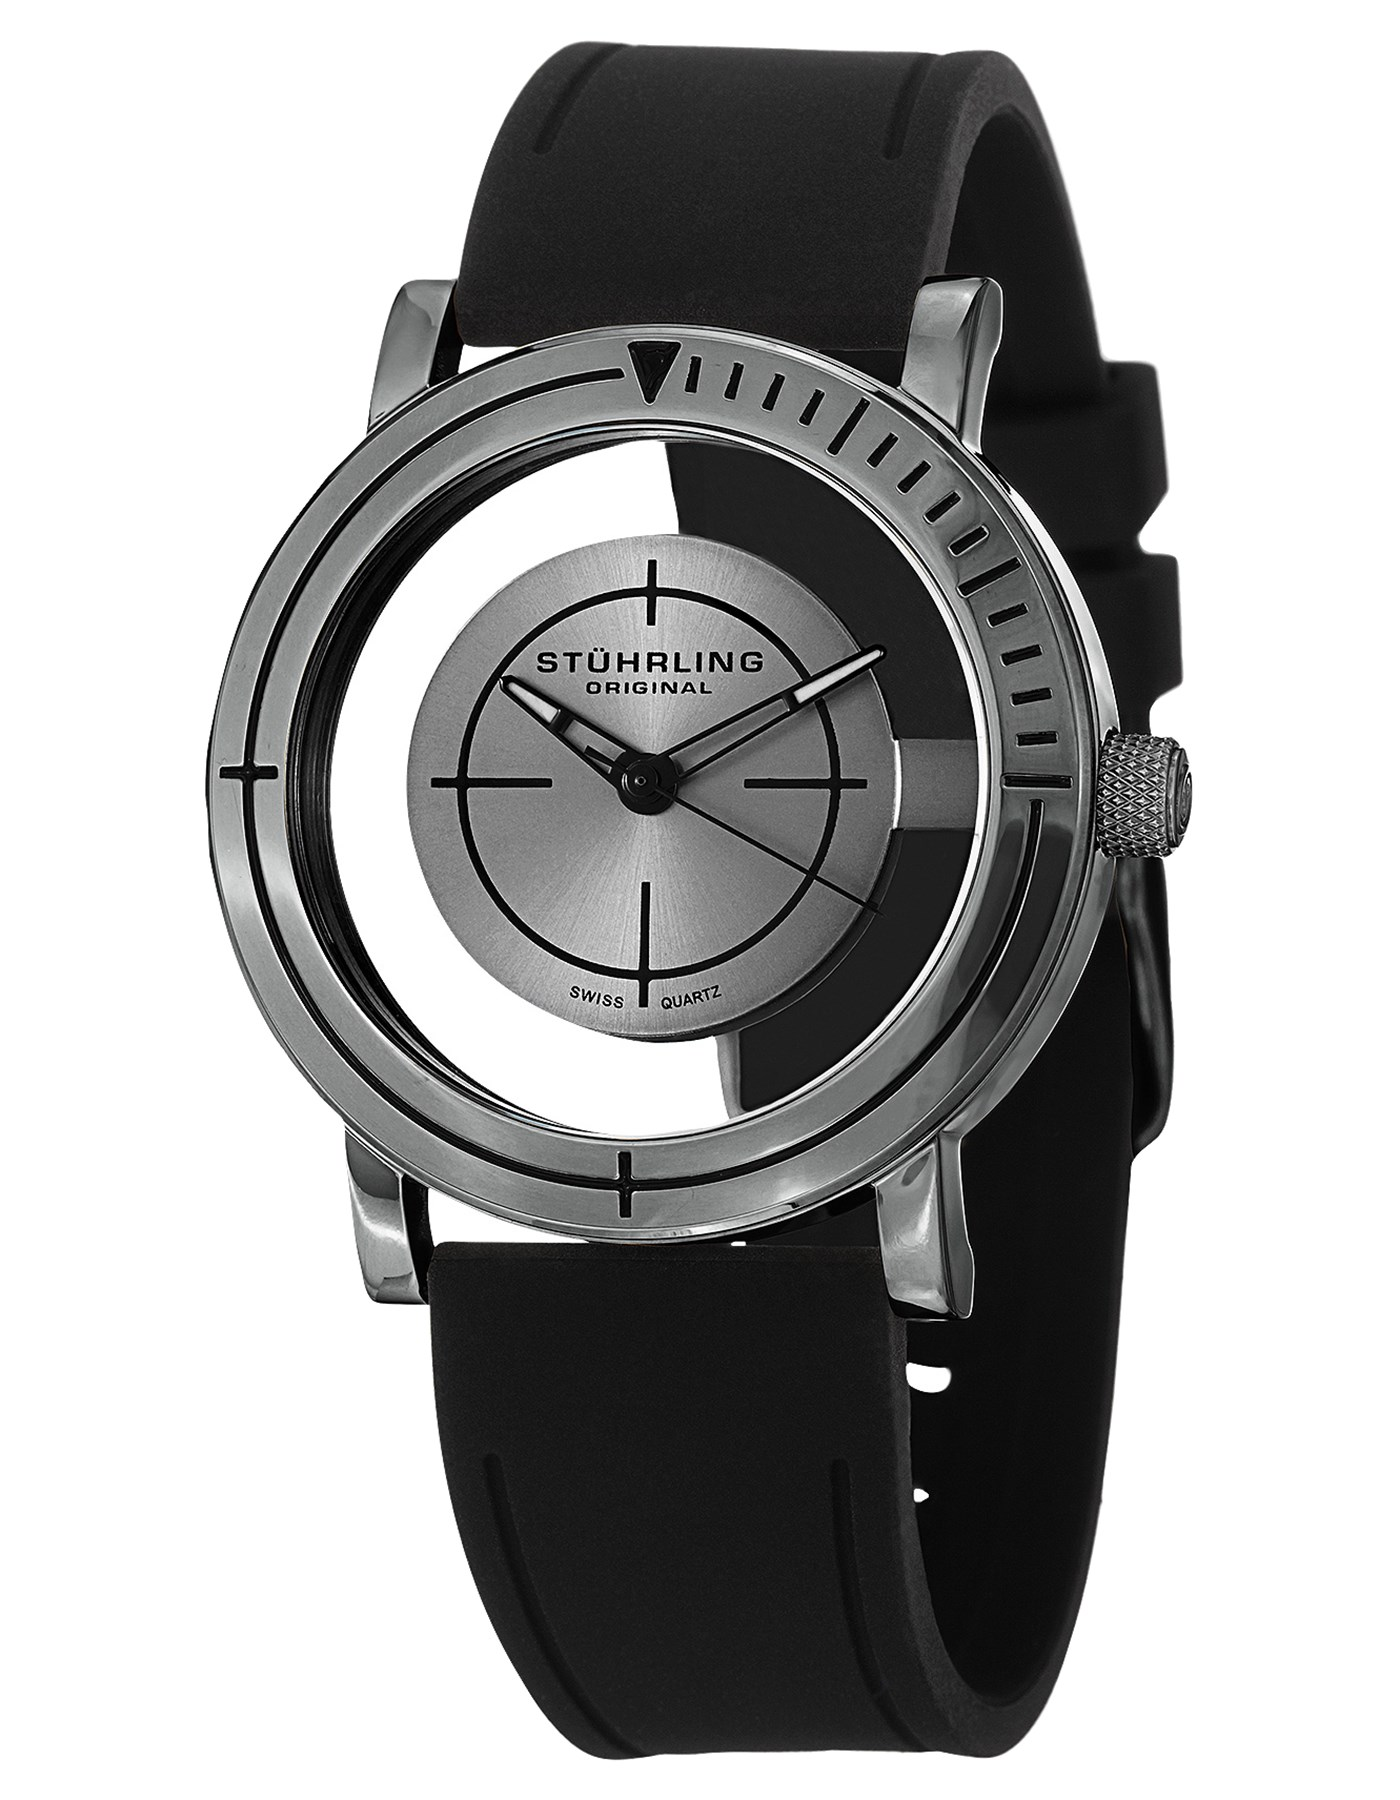 Top 5 most popular stuhrling watches under 100 for men the watch blog for Watches under 100